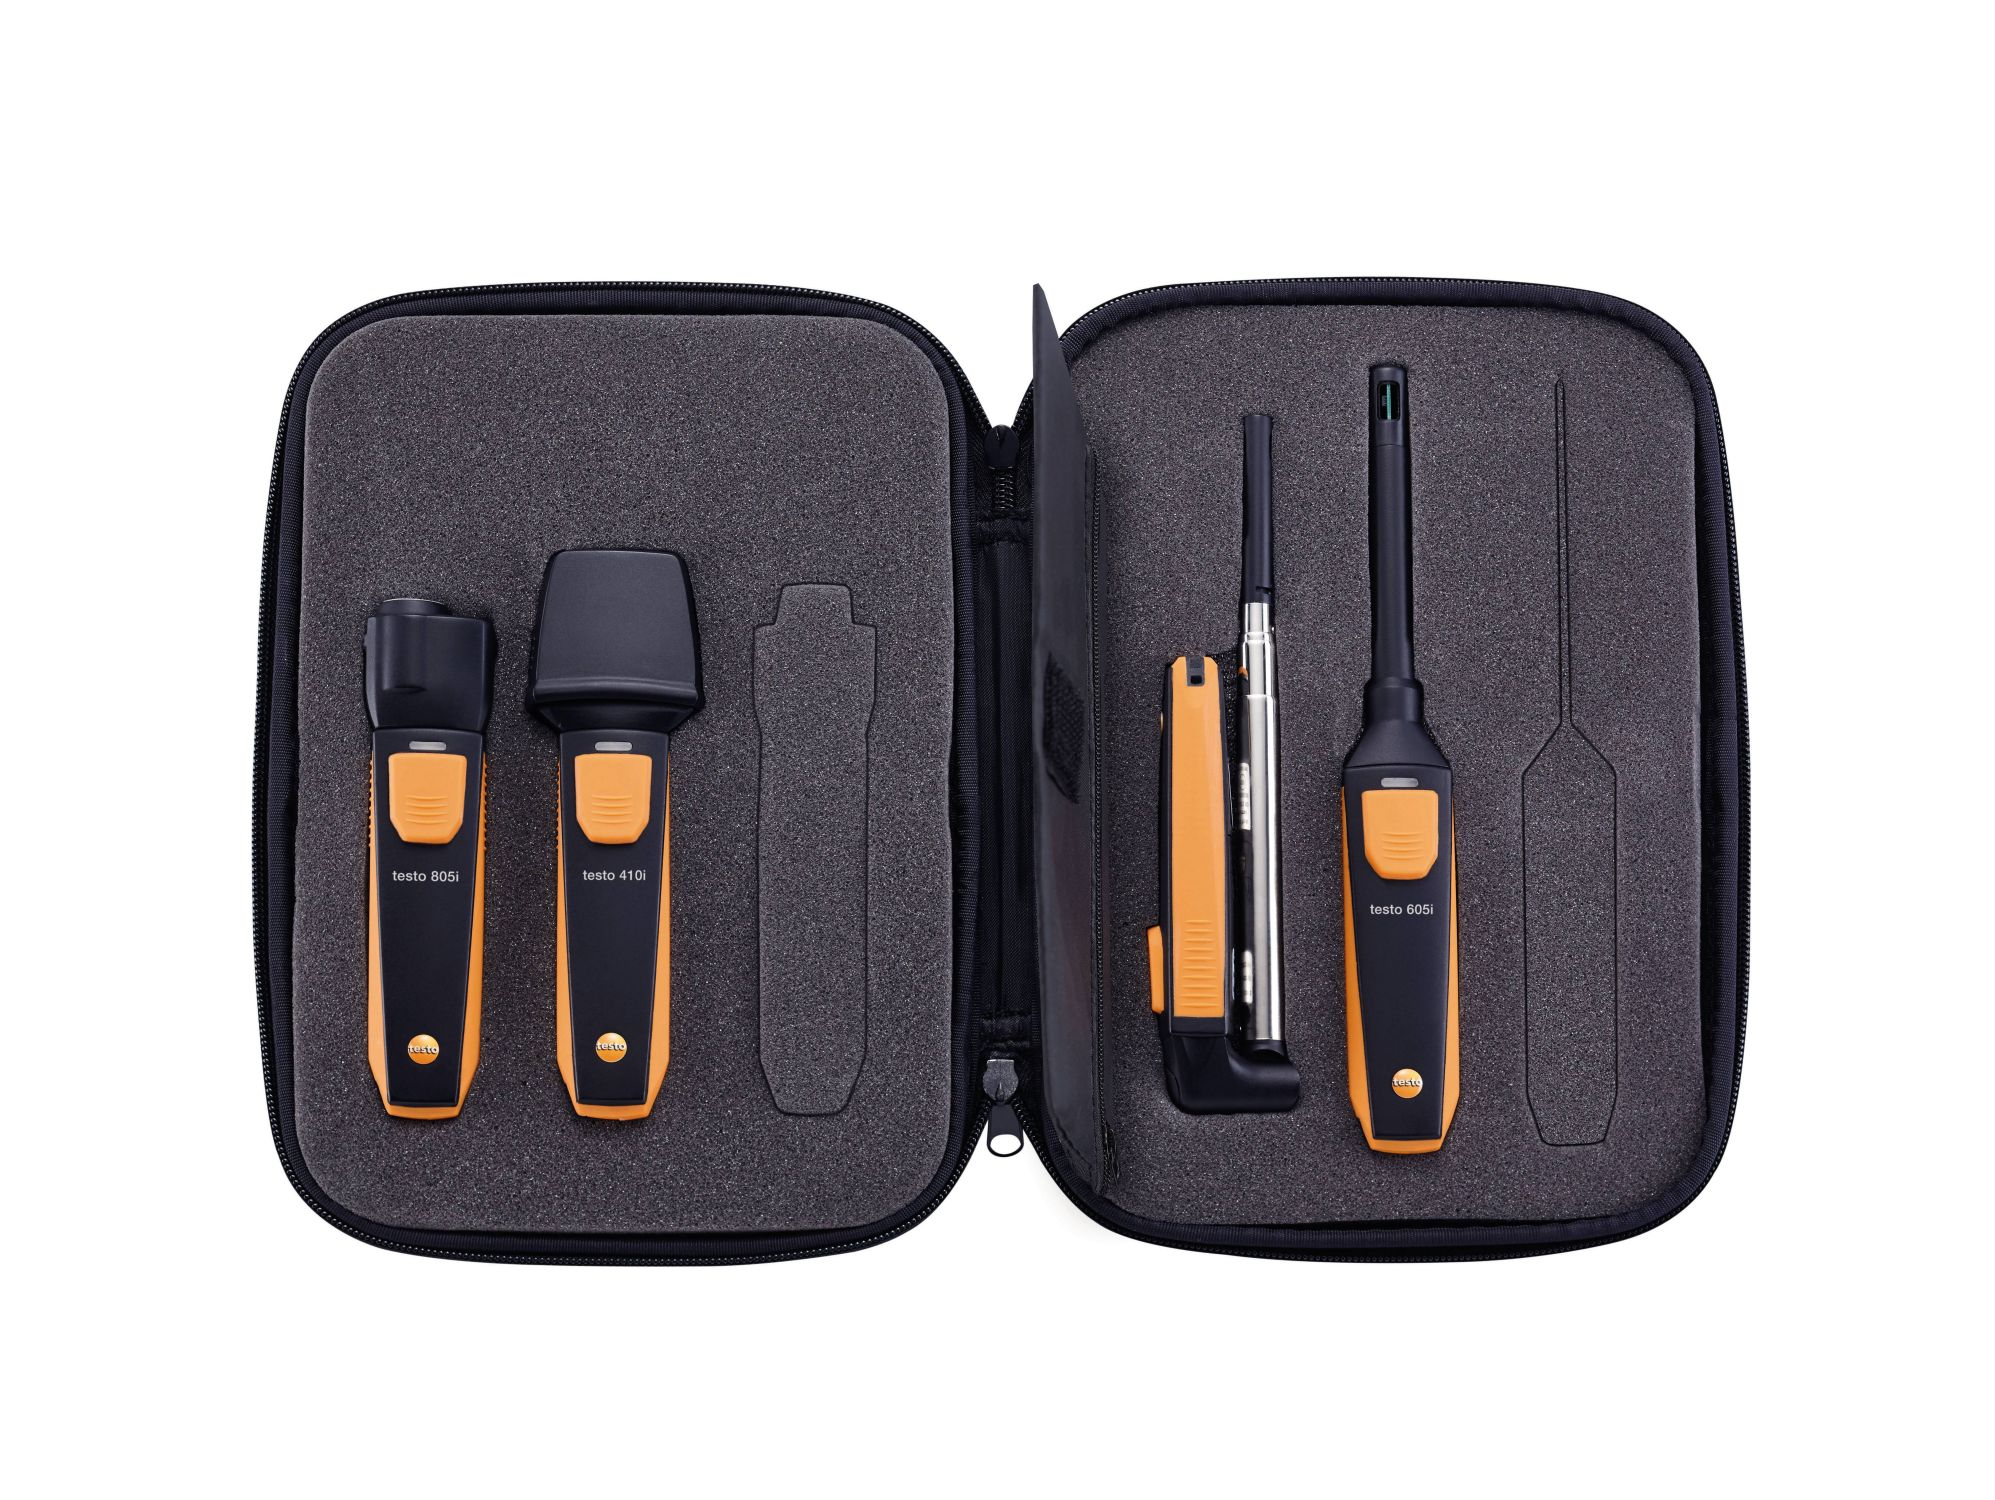 The compact testo Smart Probe VAC set: all important measuring instruments for VAC applications in the handy testo Smart Case.